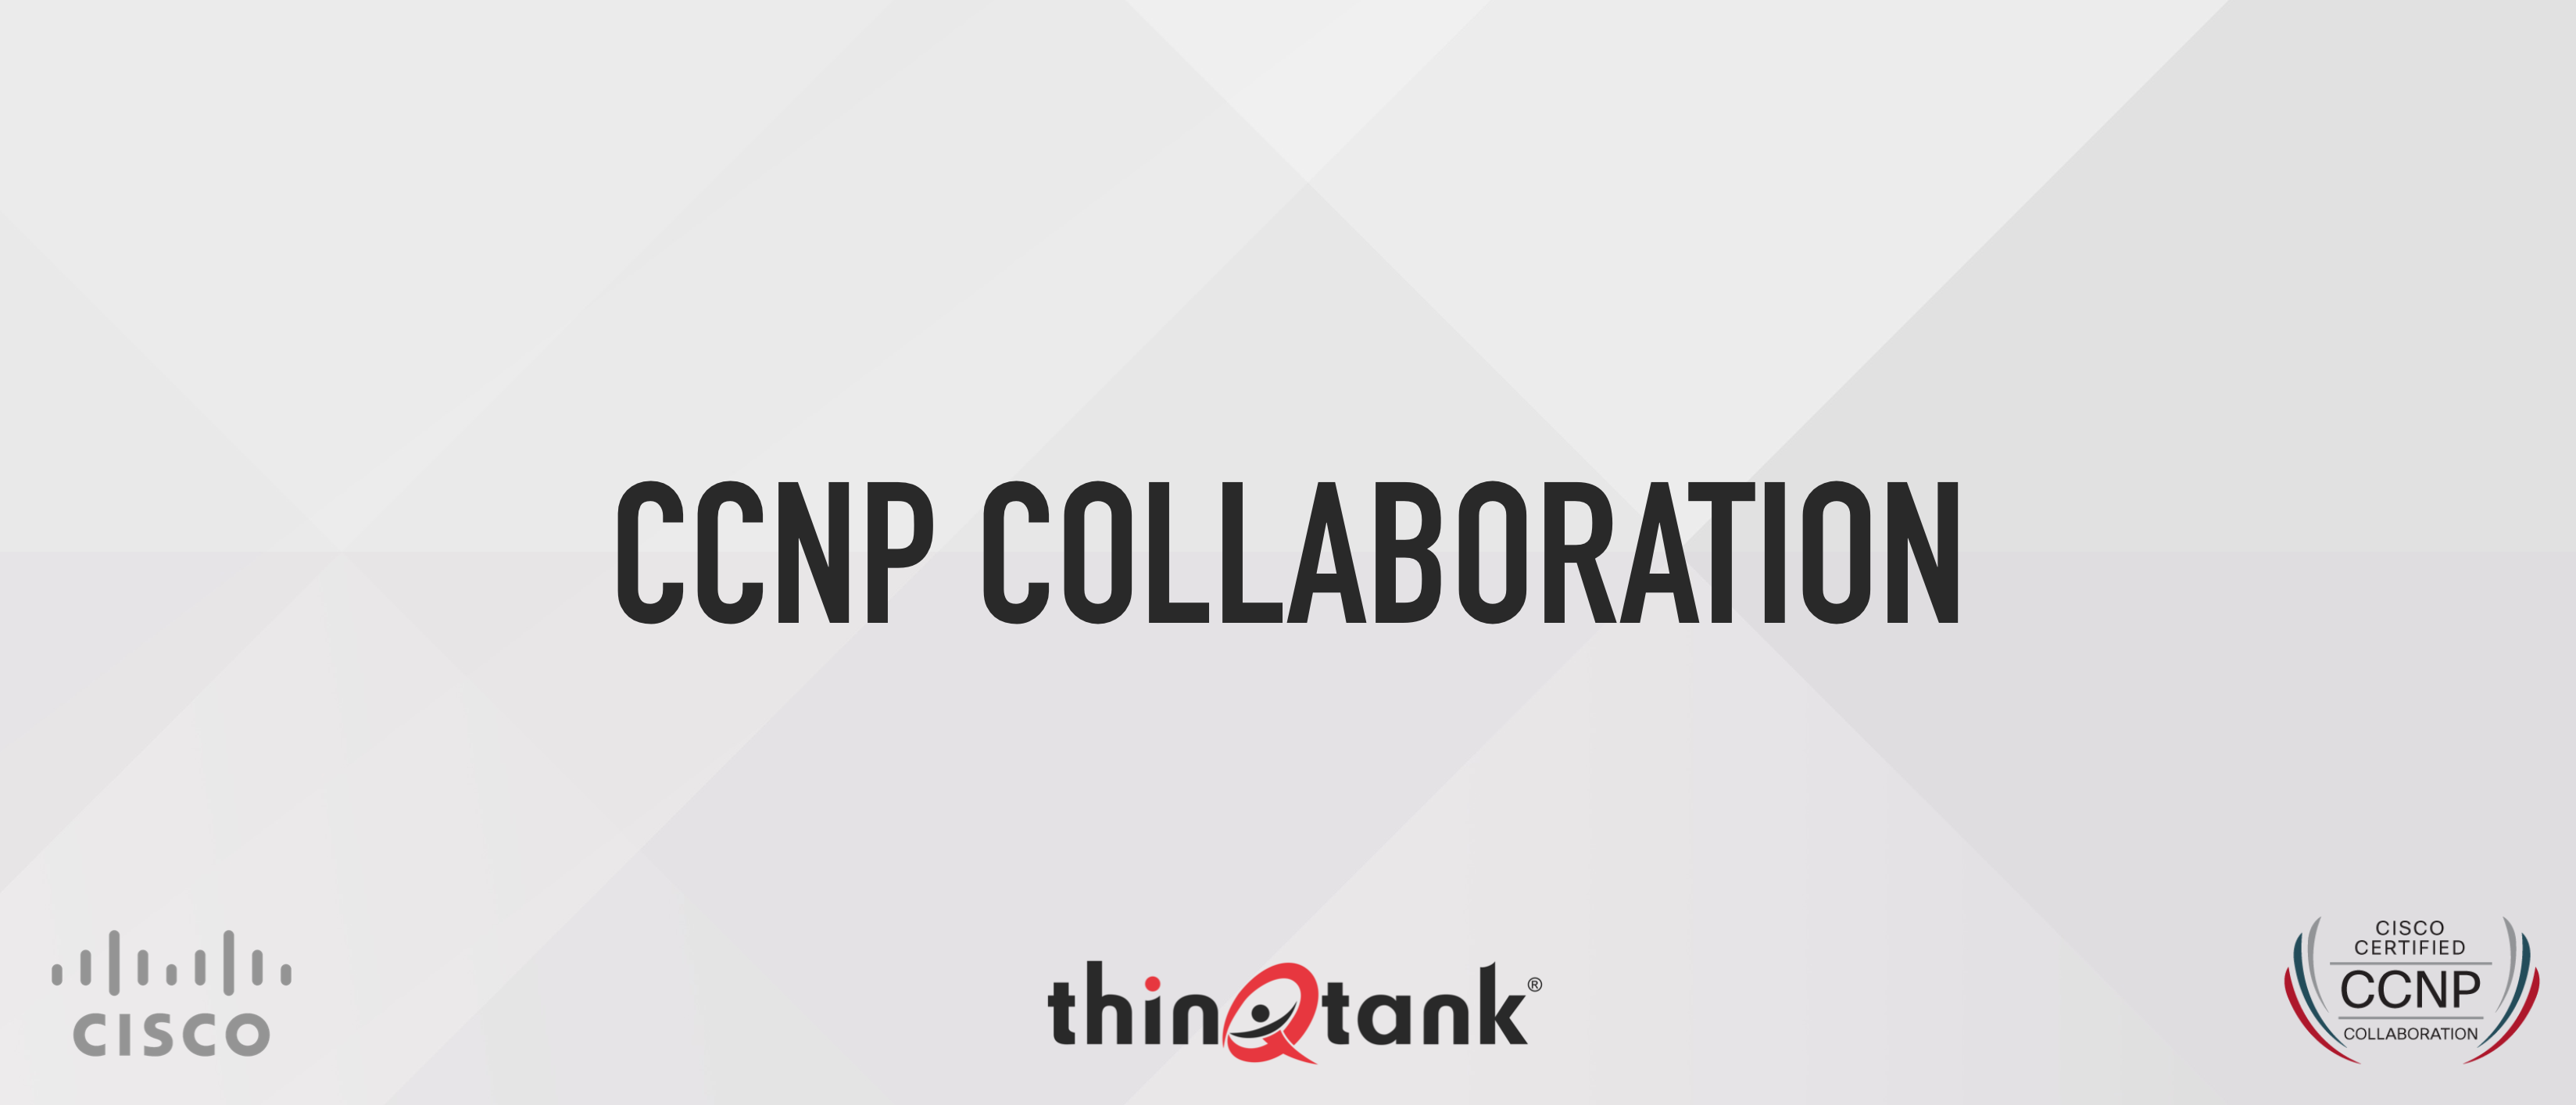 Technology Driven Collaboration Thinqtank Learning